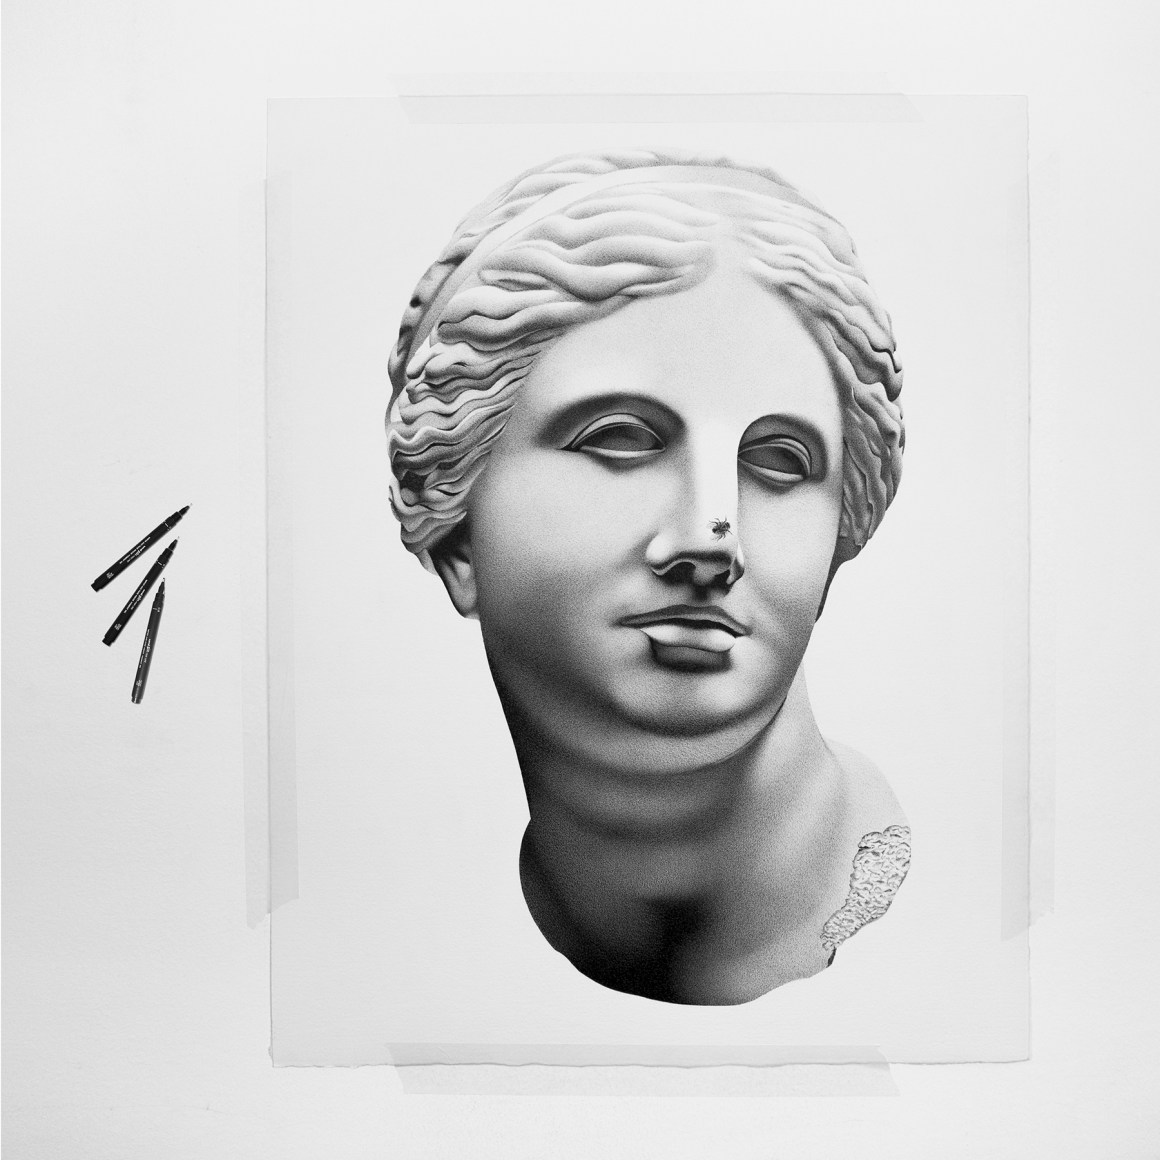 By superposing lines dots and pencil strokes alessandro paglia gives birth to his magic and provides relief to his imagination and pop culture imagery